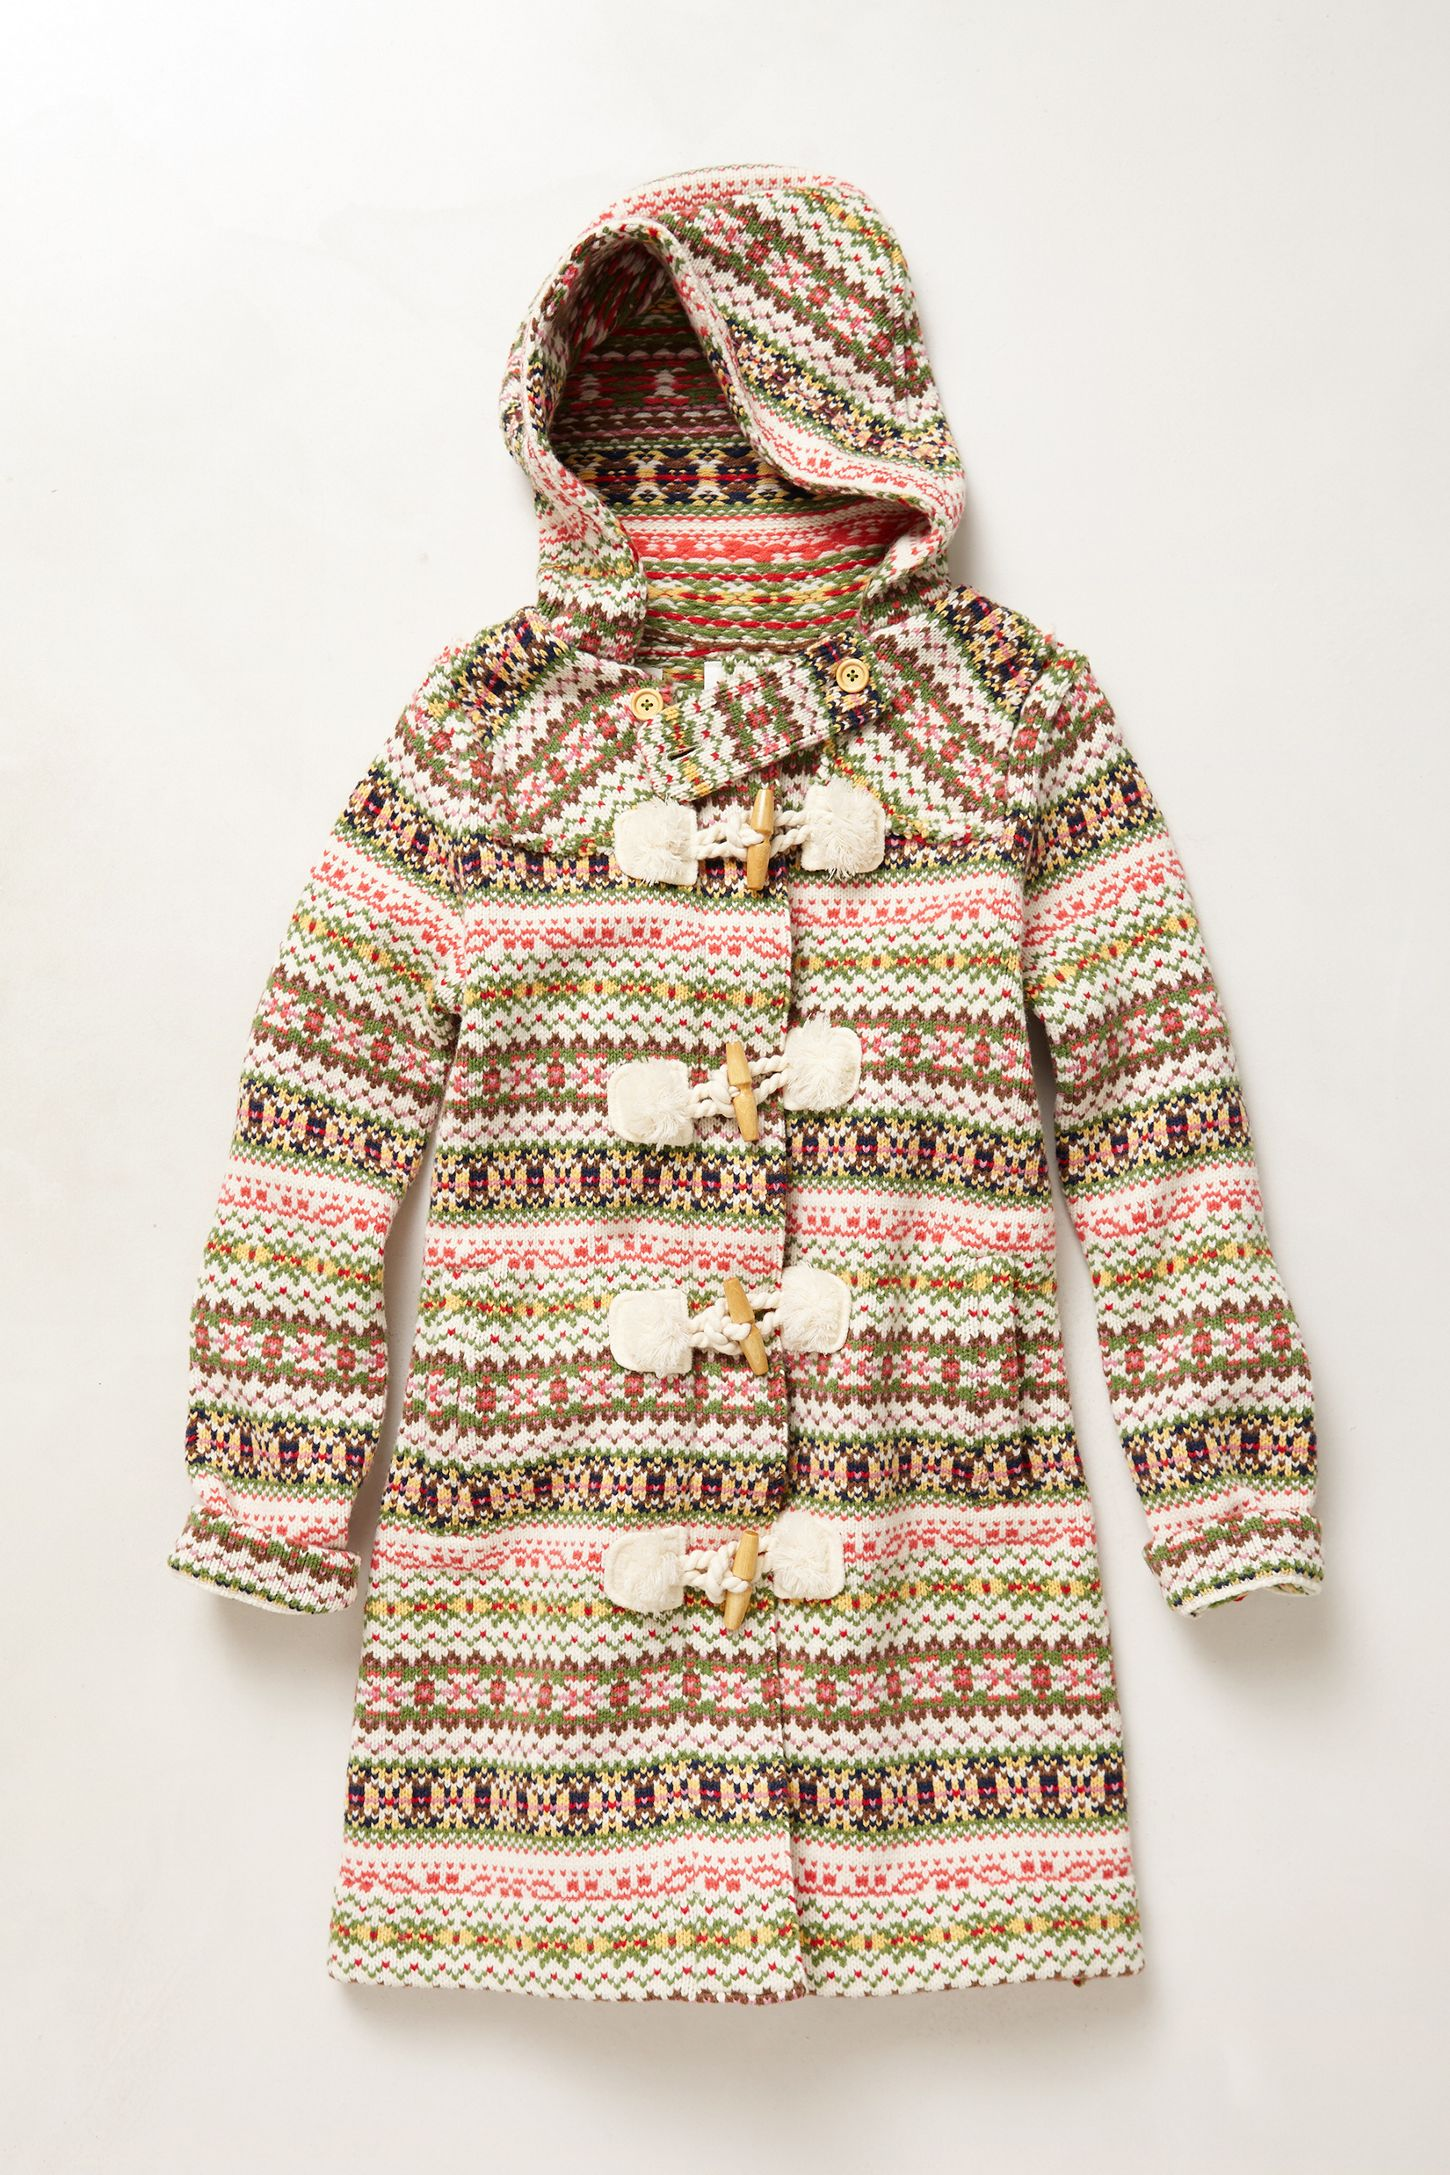 6a6414b676a Archival Collection  Fair Isle Sweater Coat